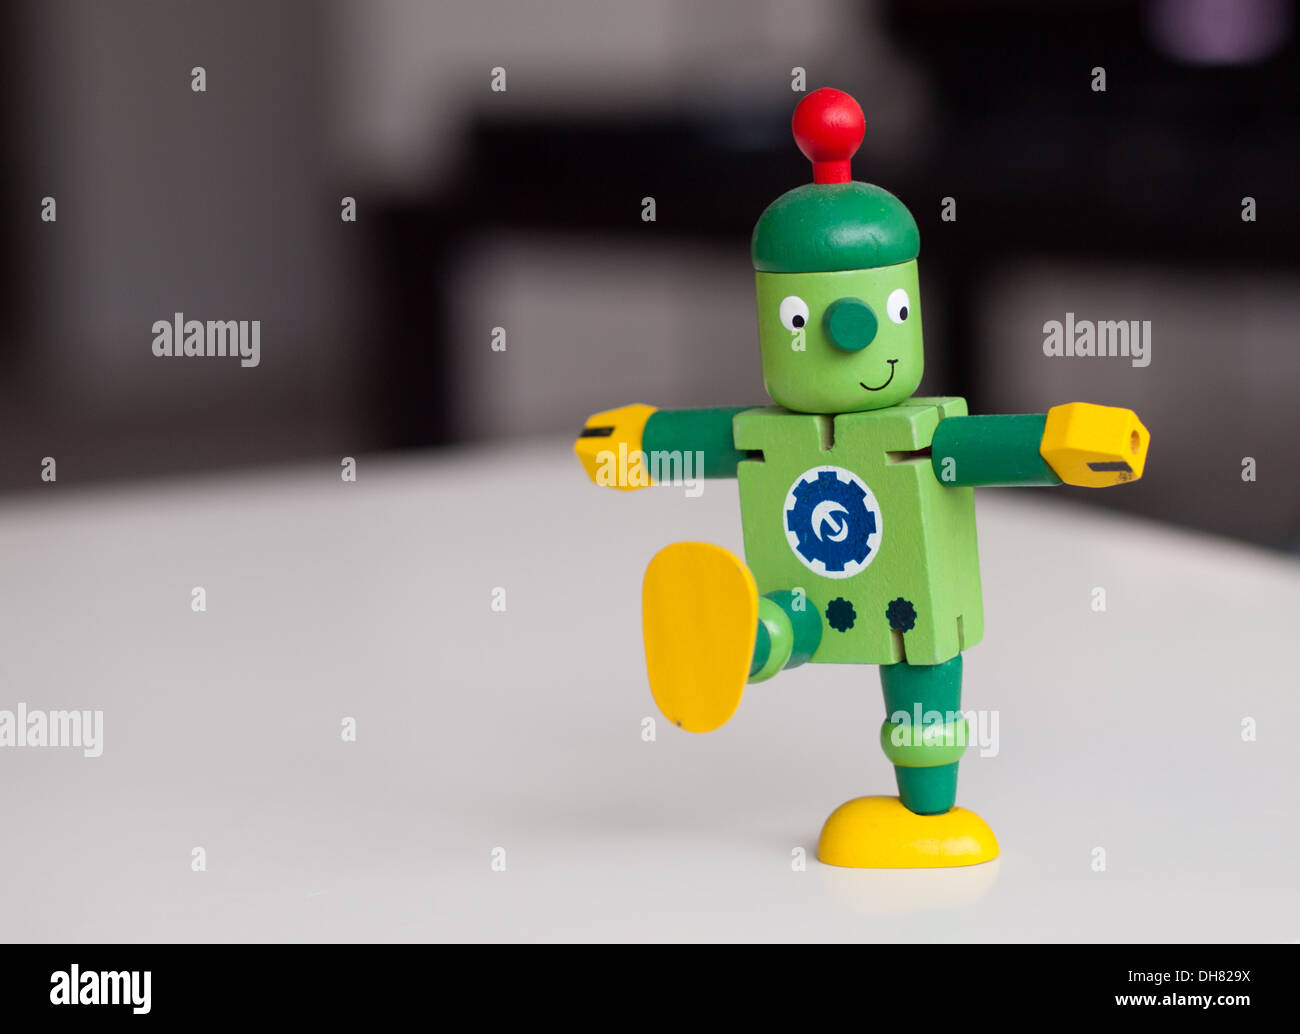 A happy, cute, wooden toy robot, marching. - Stock Image